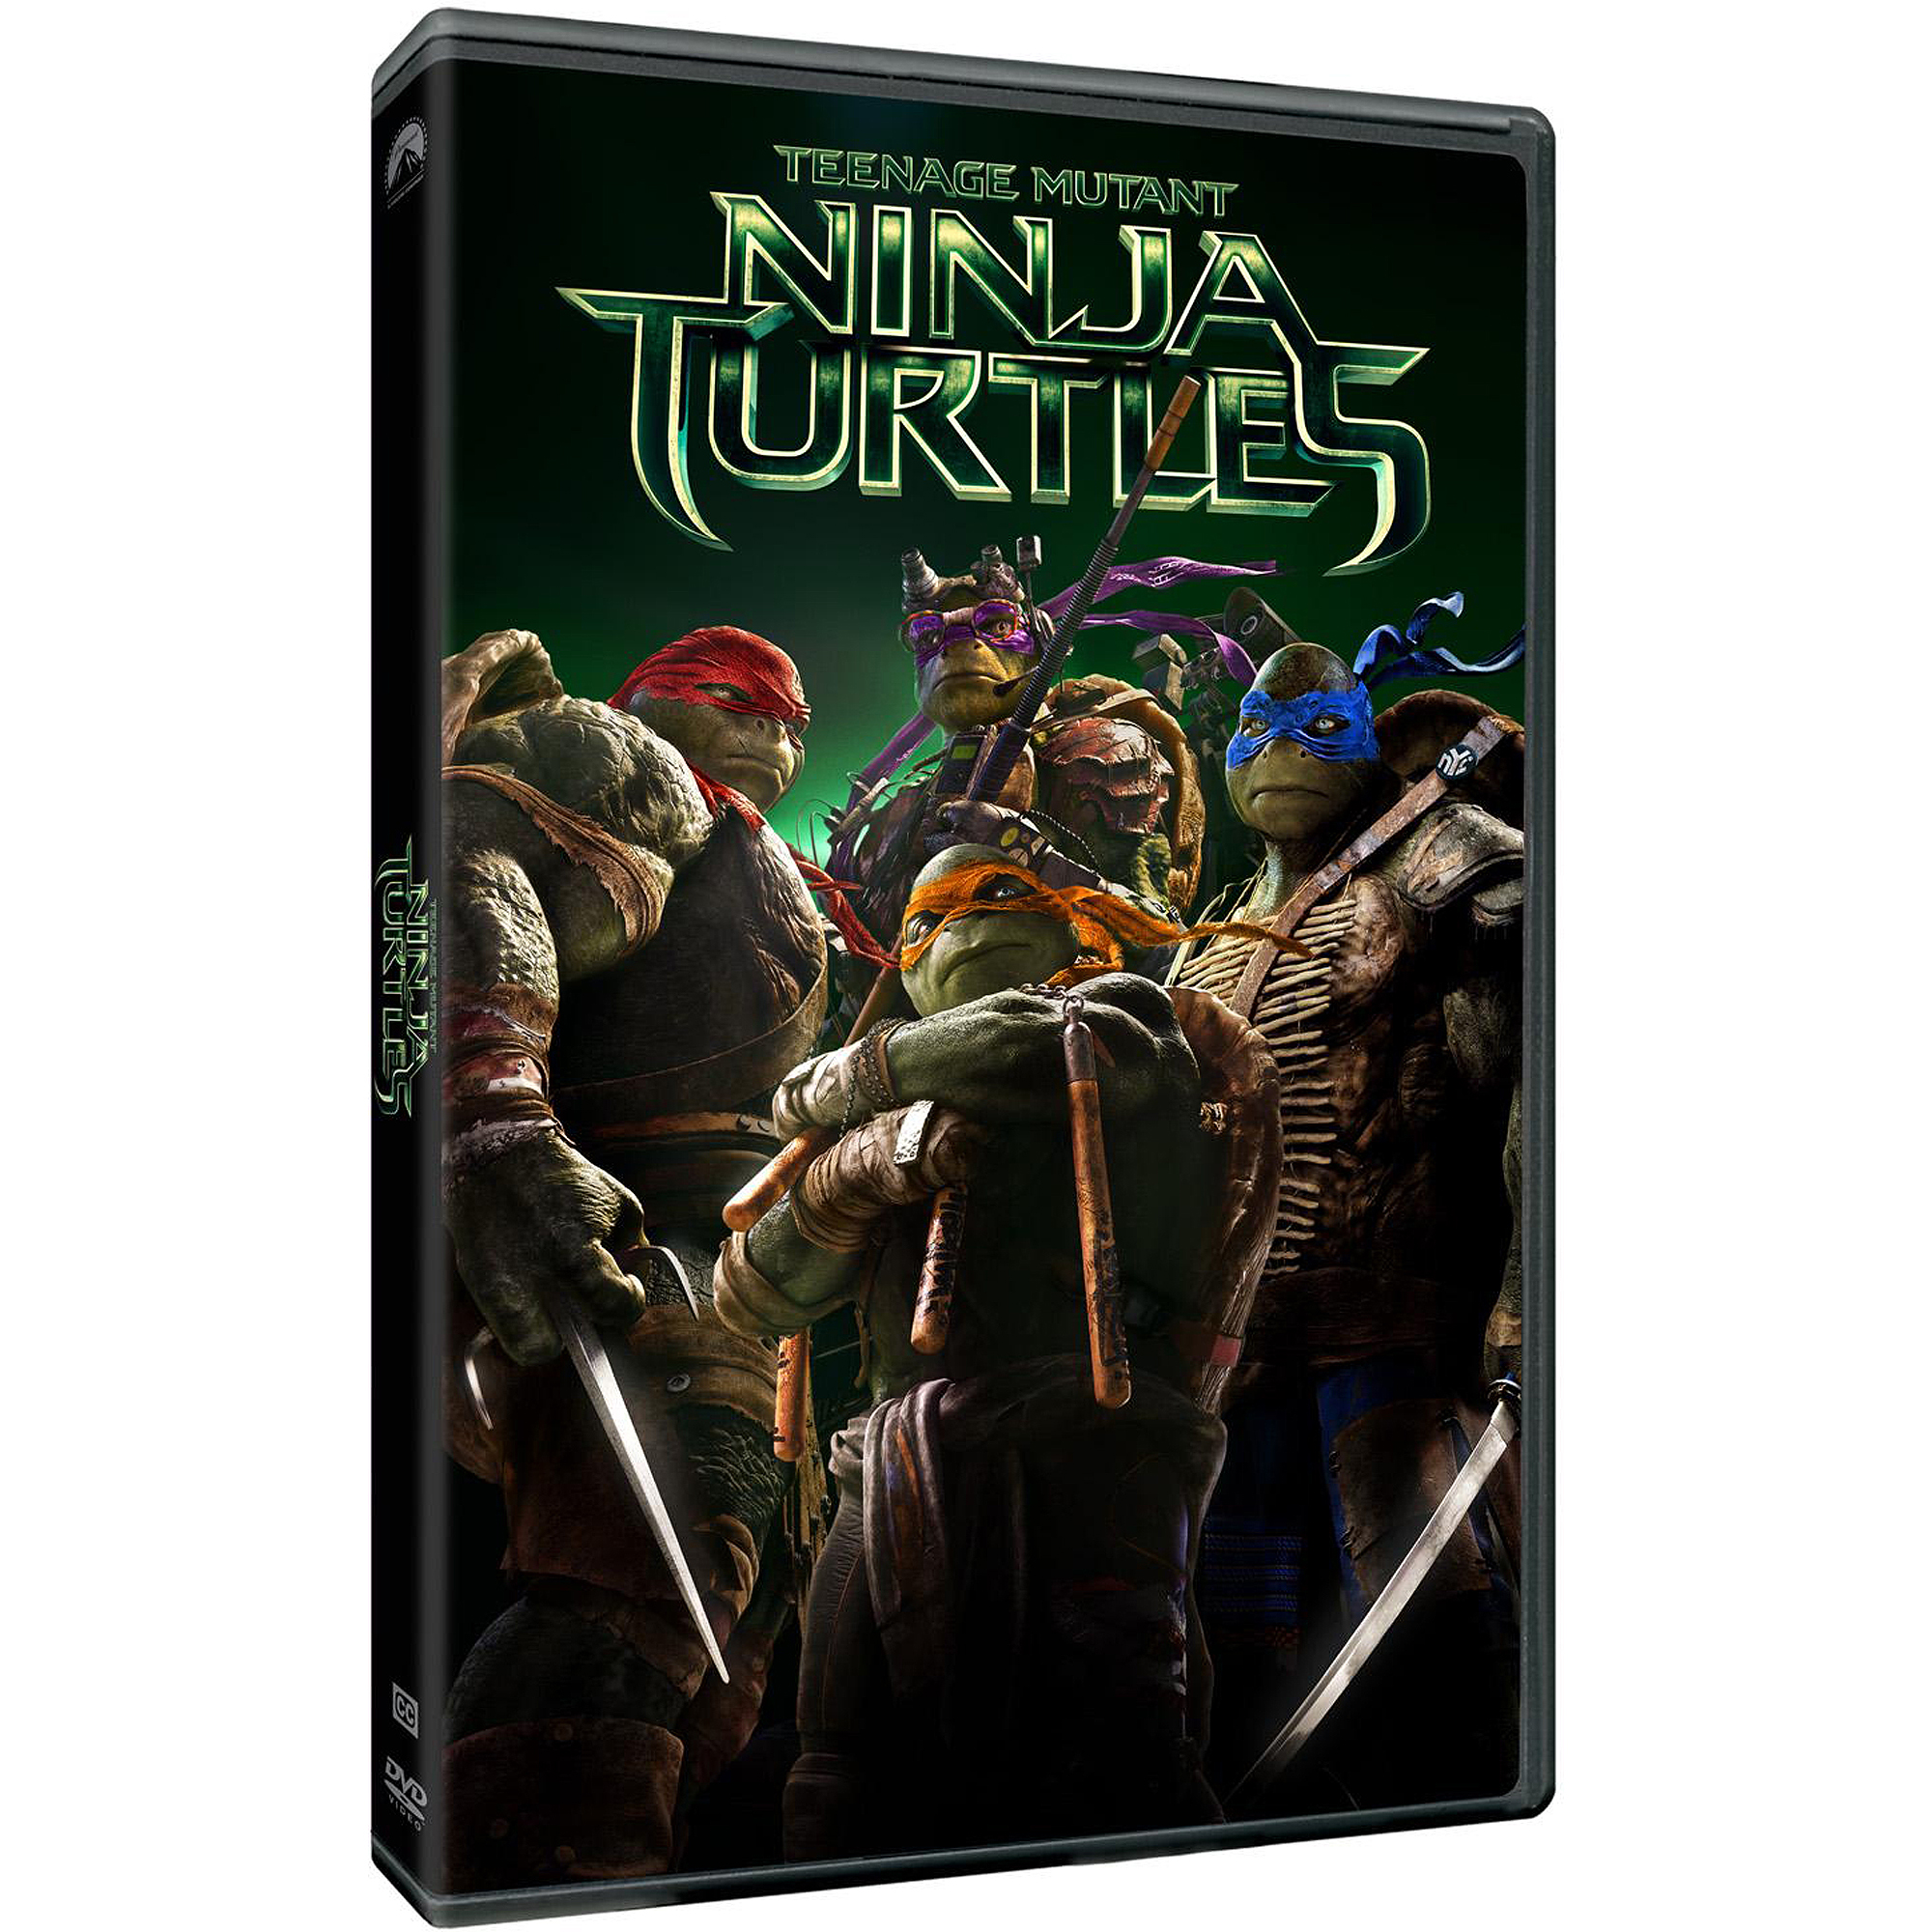 Teenage Mutant Ninja Turtles (2014) (DVD   Digital HD) (With INSTAWATCH) (Widescreen)